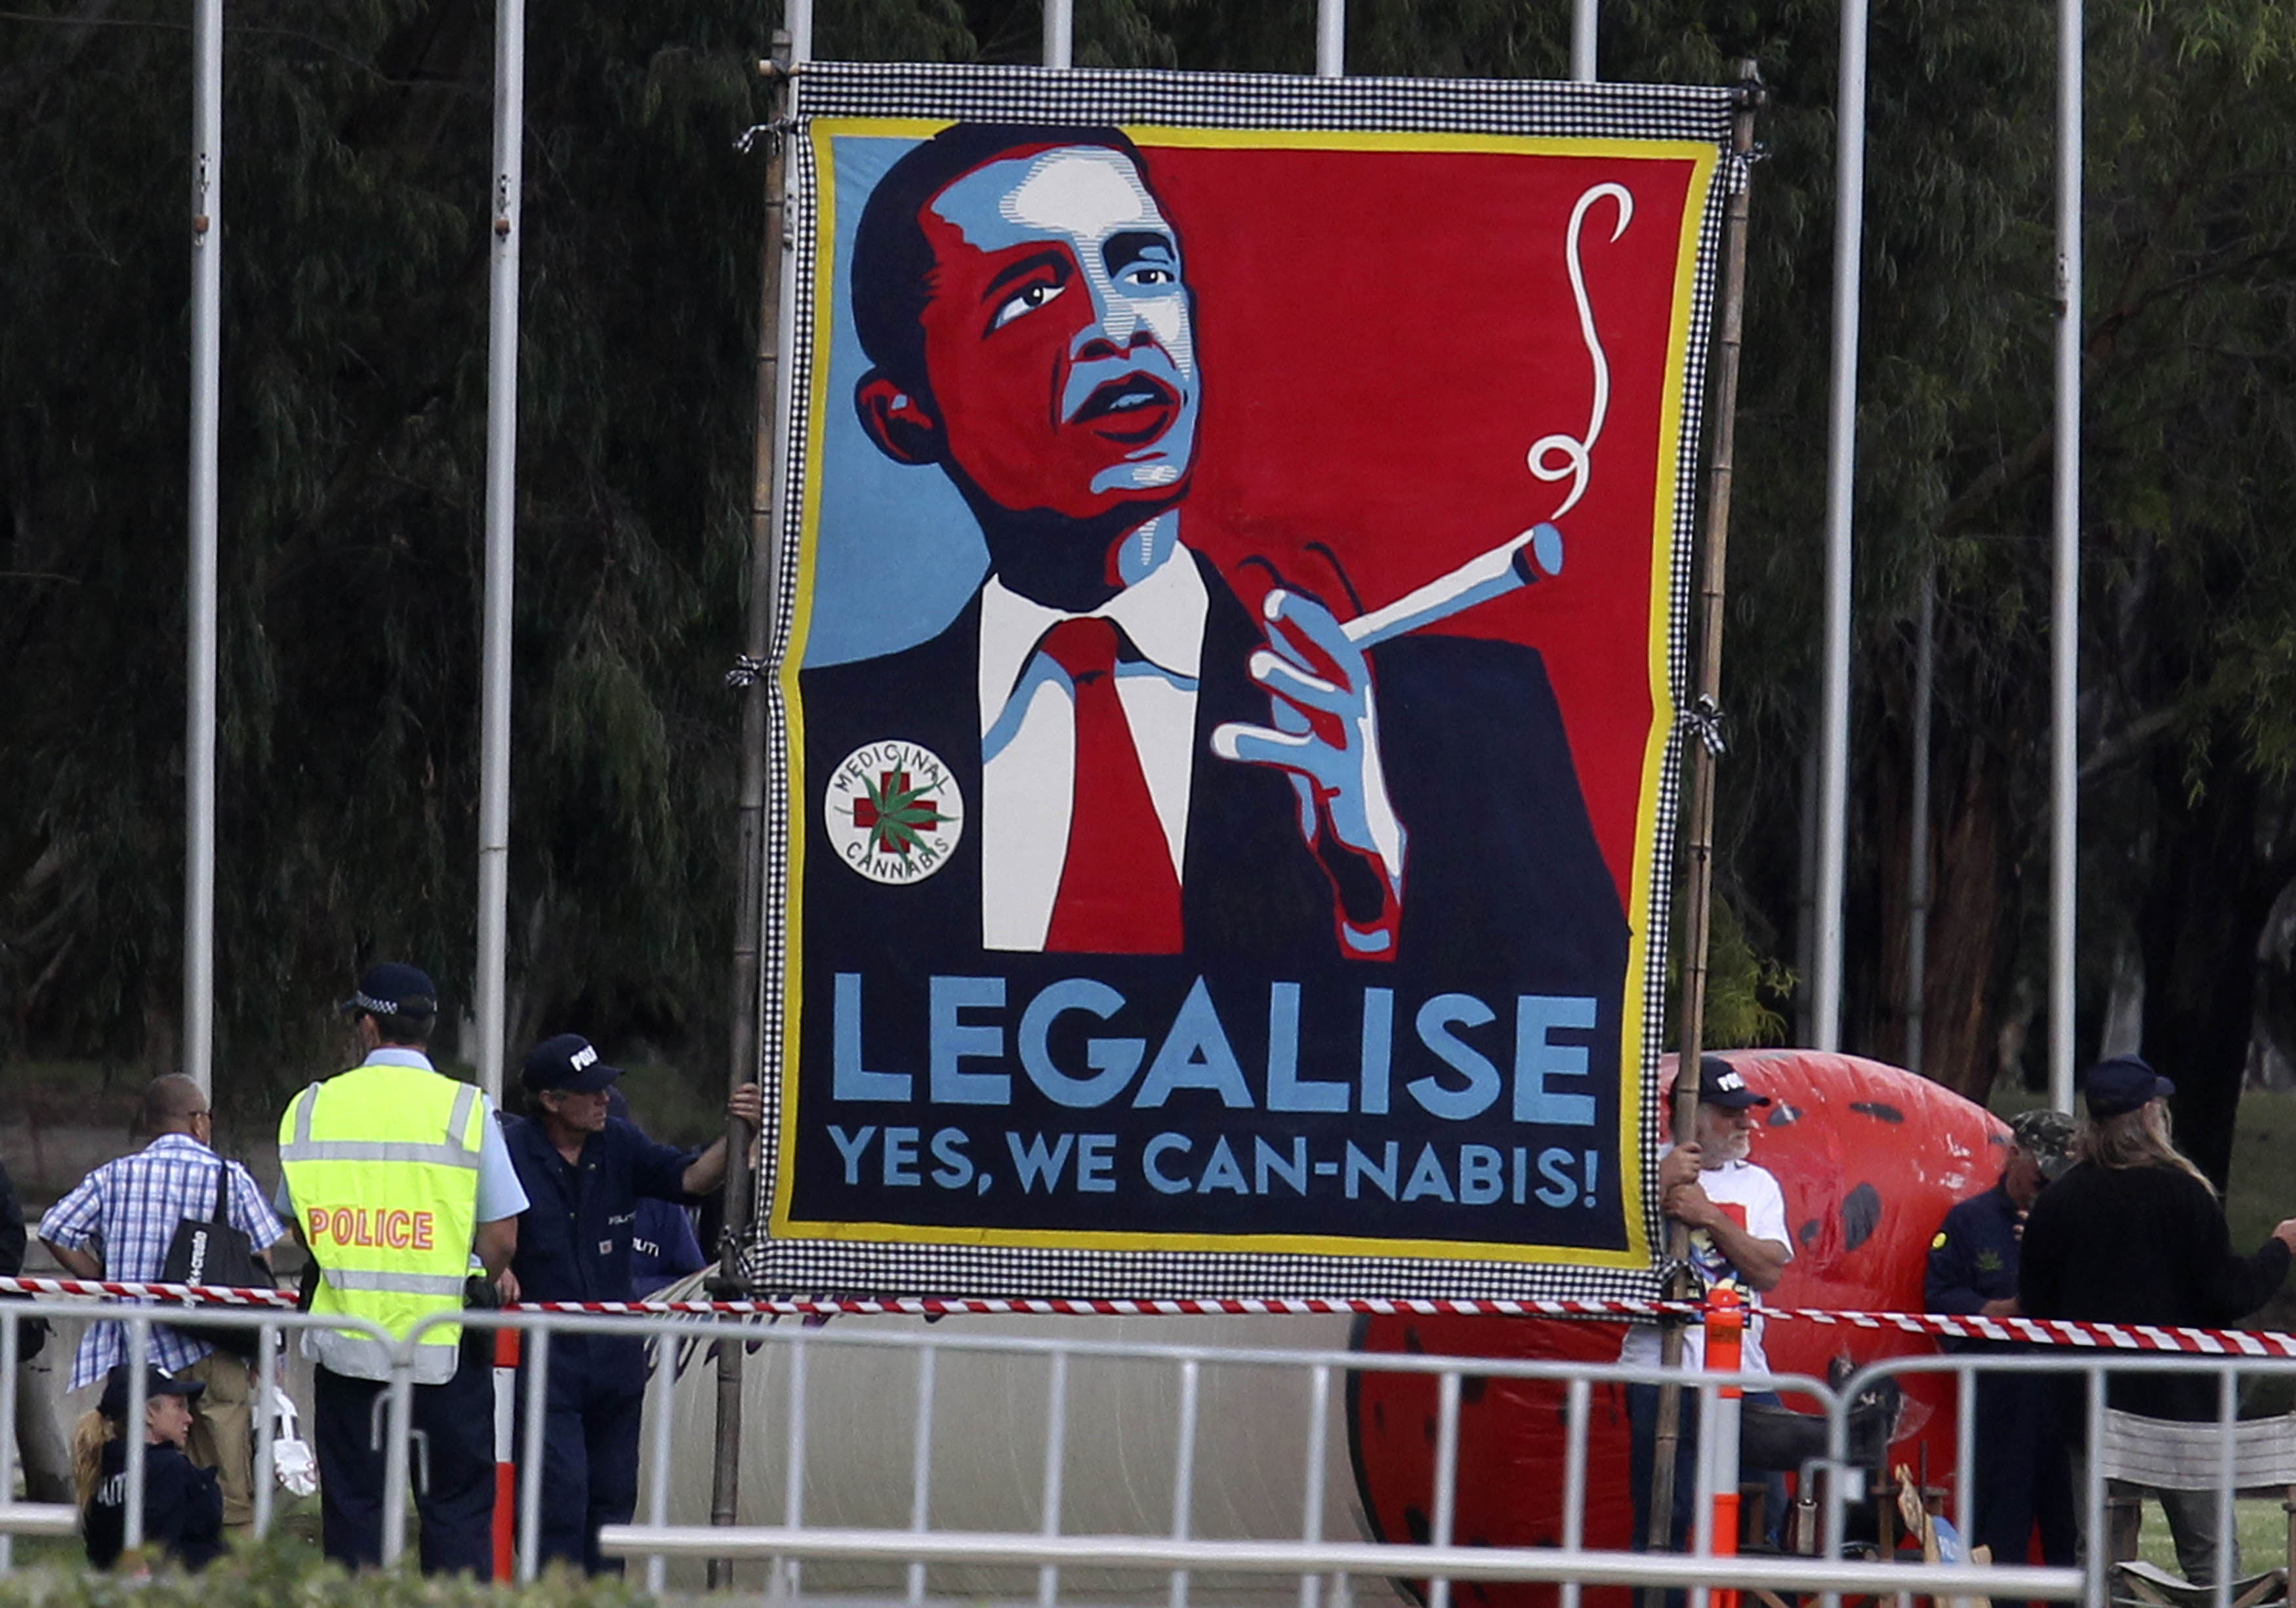 Protesters hold giant sign to legalize marijuana before U.S. President Barack Obama arrives to participate in an official arrival ceremony at Parliment House in Canberra, Australia, November 16, 2011. REUTERS/Larry Downing (AUSTRALIA - Tags: POLITICS) - RTR2U2RV